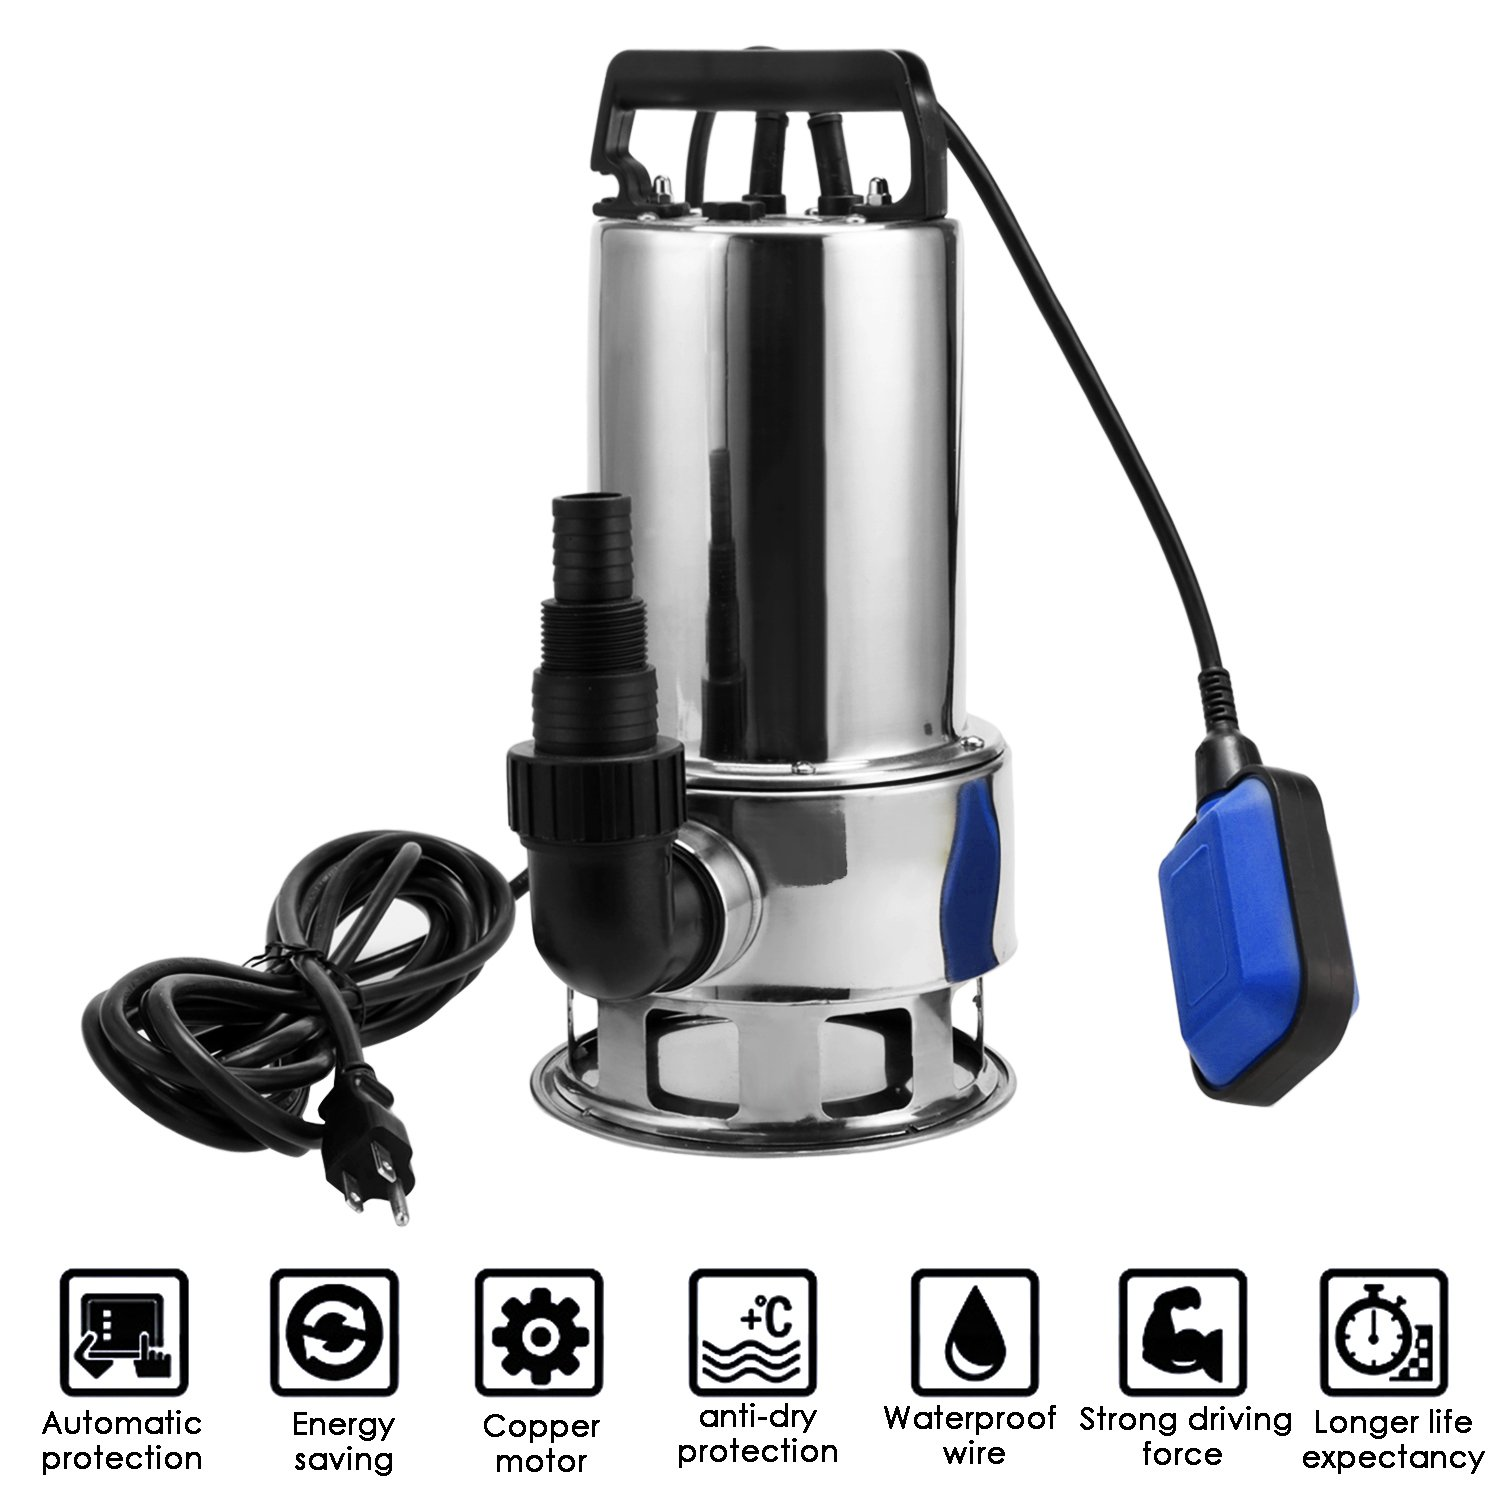 Homdox 1.5 HP Stainless Steel Sump Pump Submersible Pump Dirty Clean Water Pump Pool Pump w/ 15ft Cable and Float Switch by Homdox